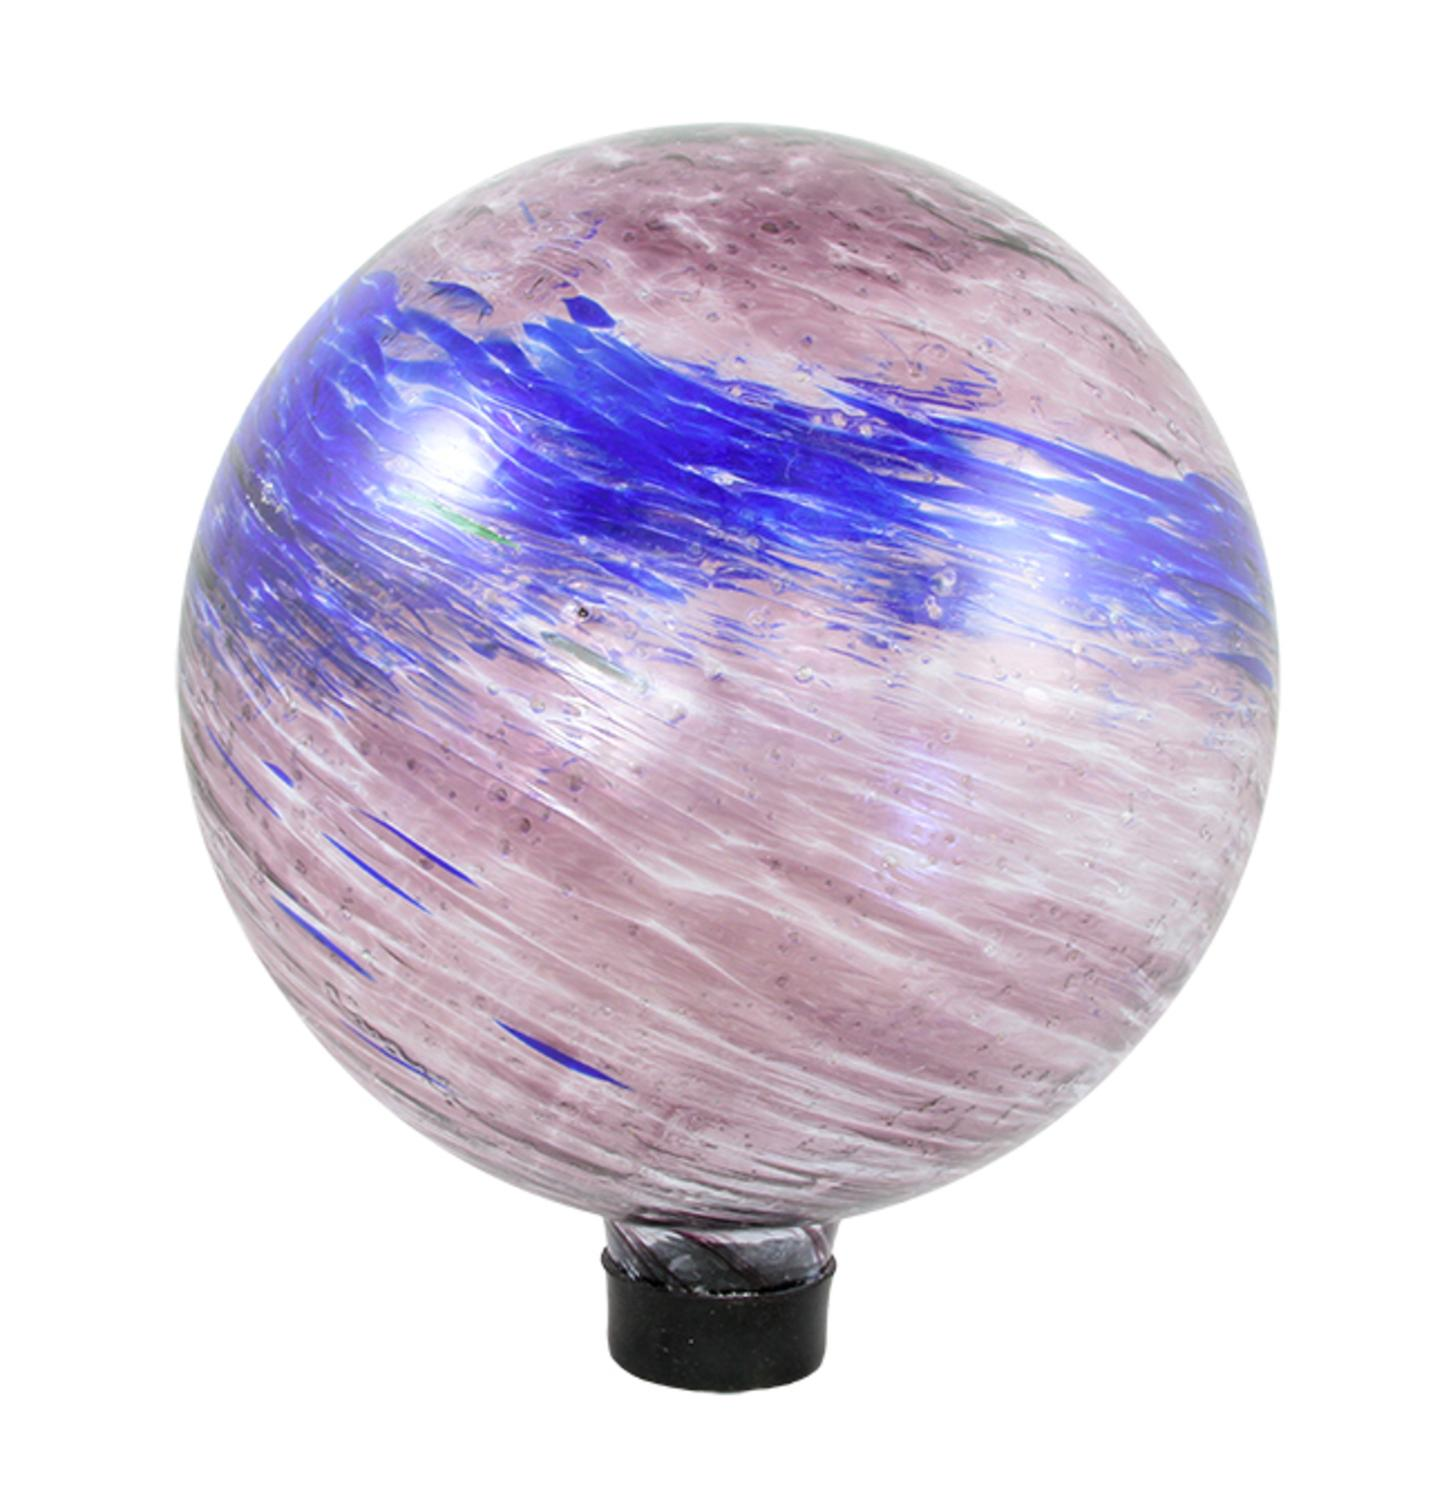 "10"" Dusky Rose Pink and Blue Swirled Glass Outdoor Patio Garden Gazing Ball by CC Outdoor Living"